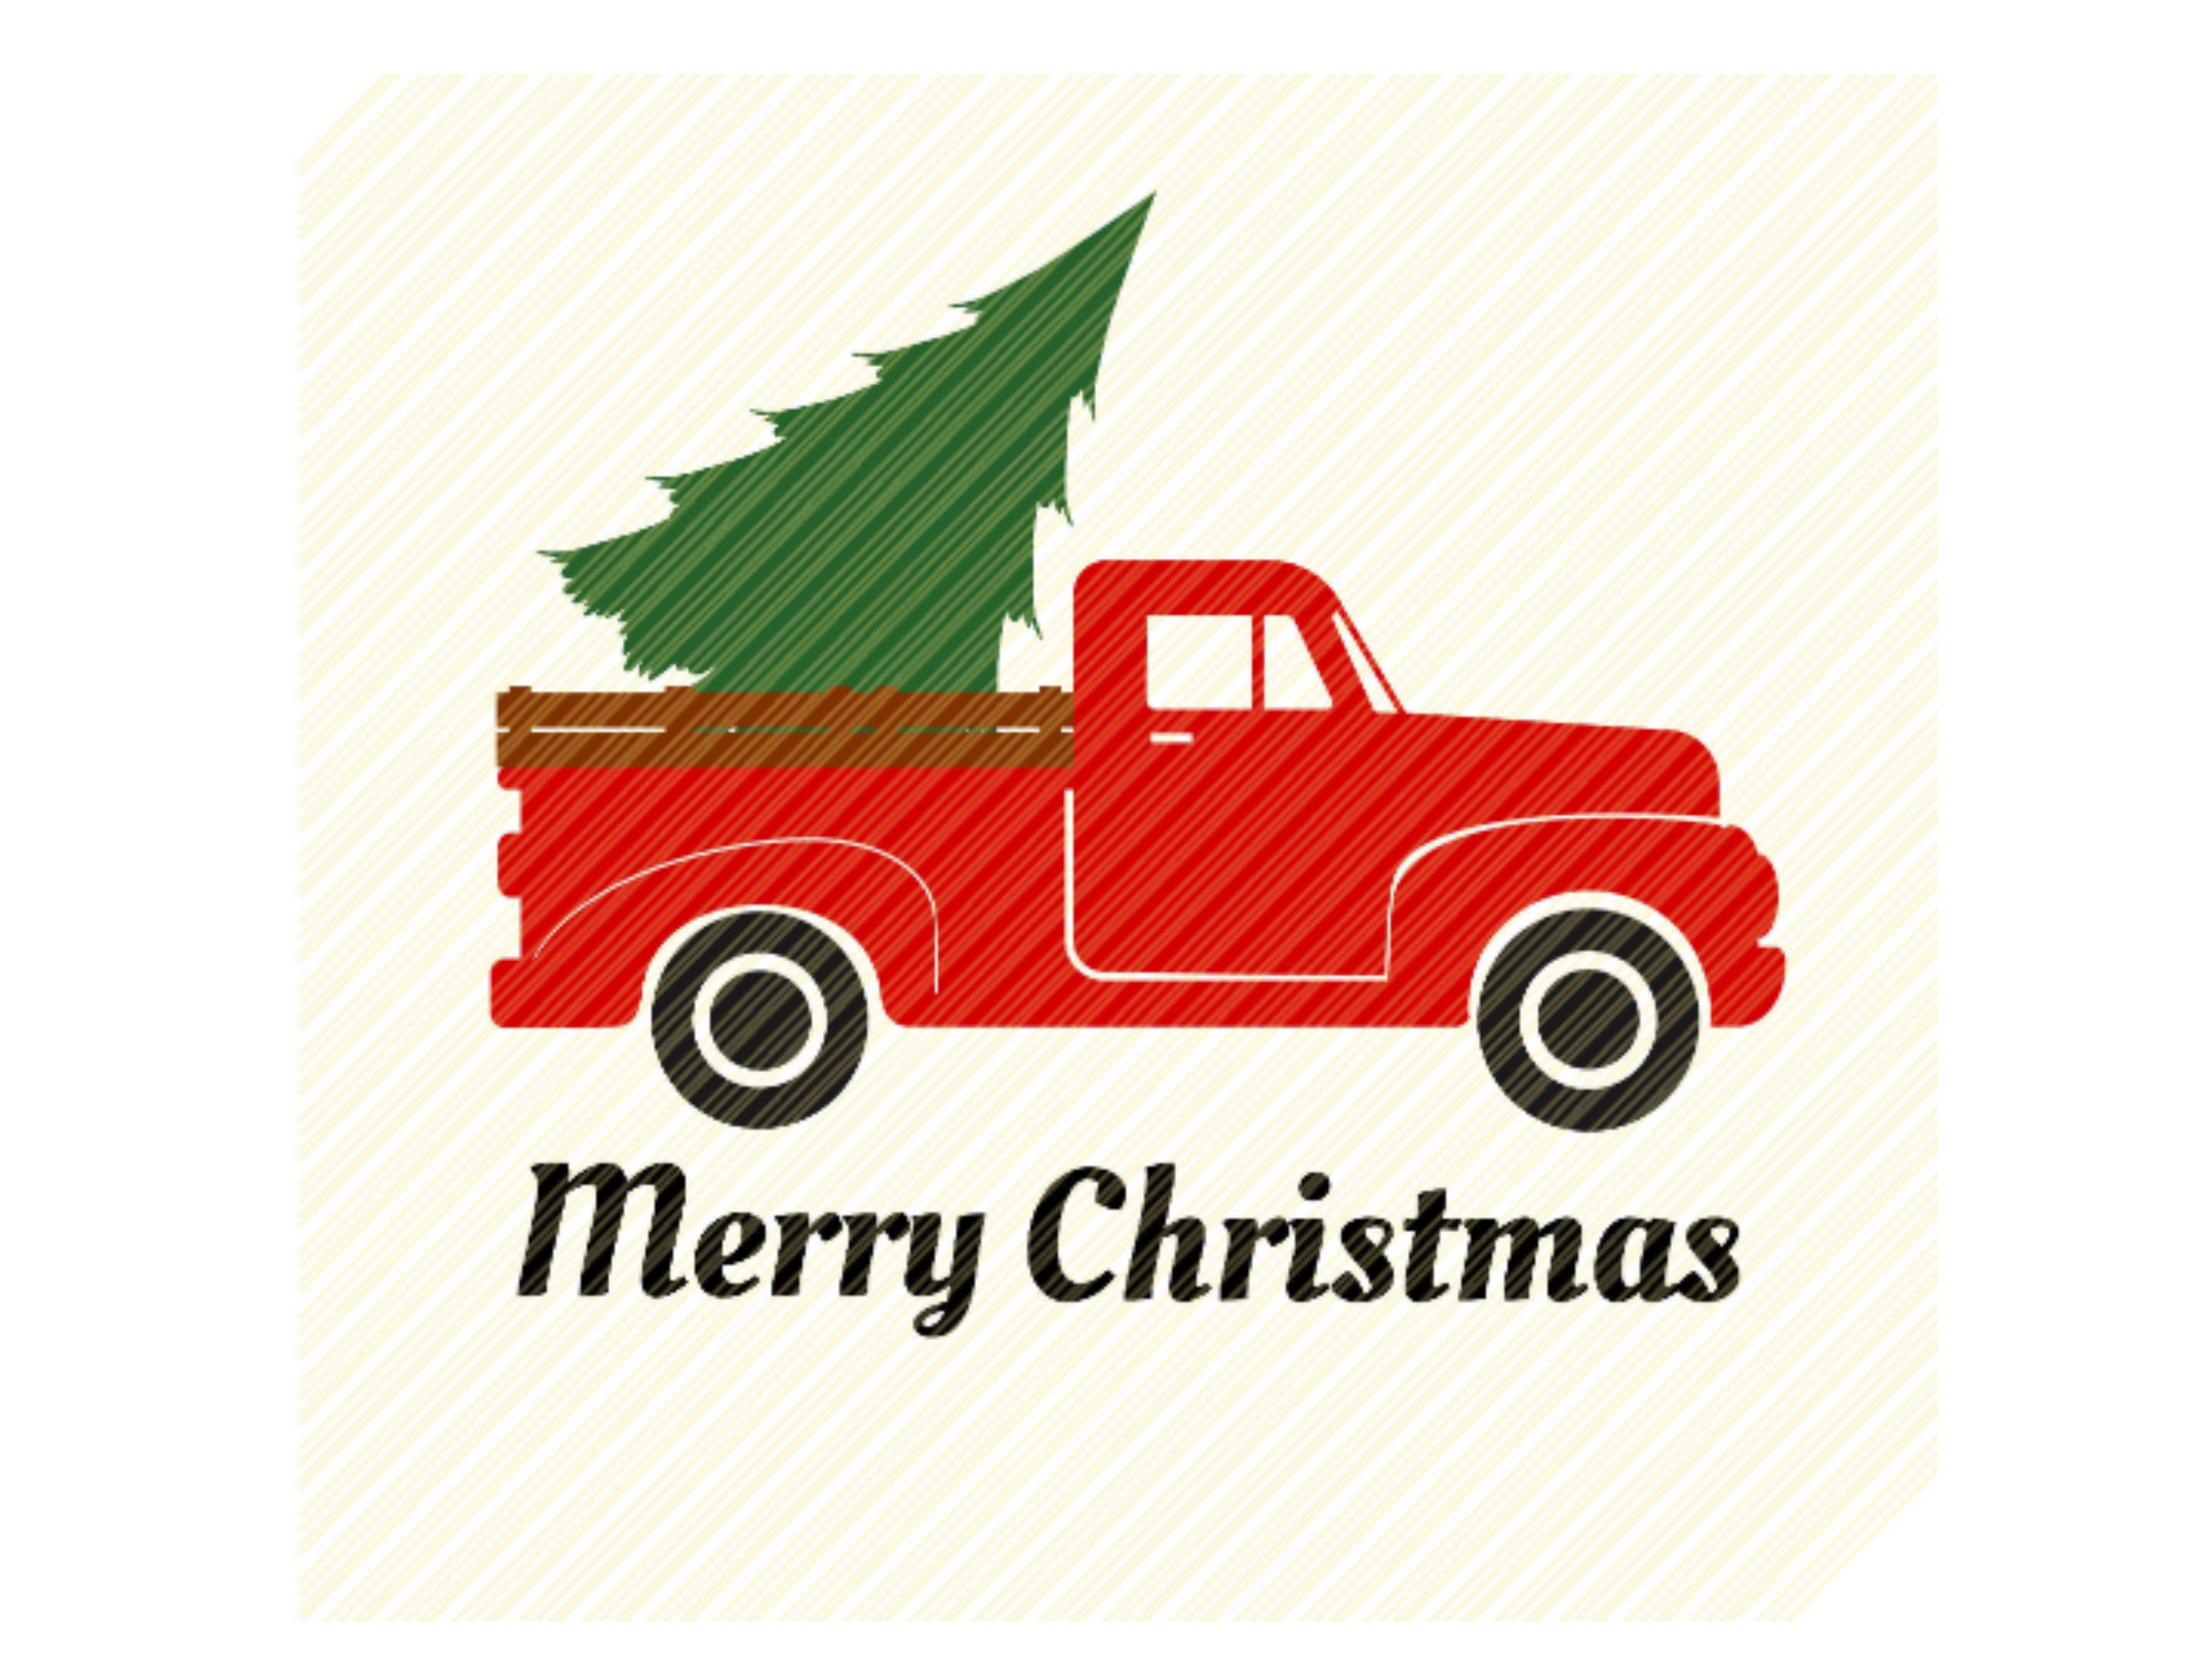 Red Vintage Truck With Christmas Tree Graphic By Svgplacedesign Creative Fabrica